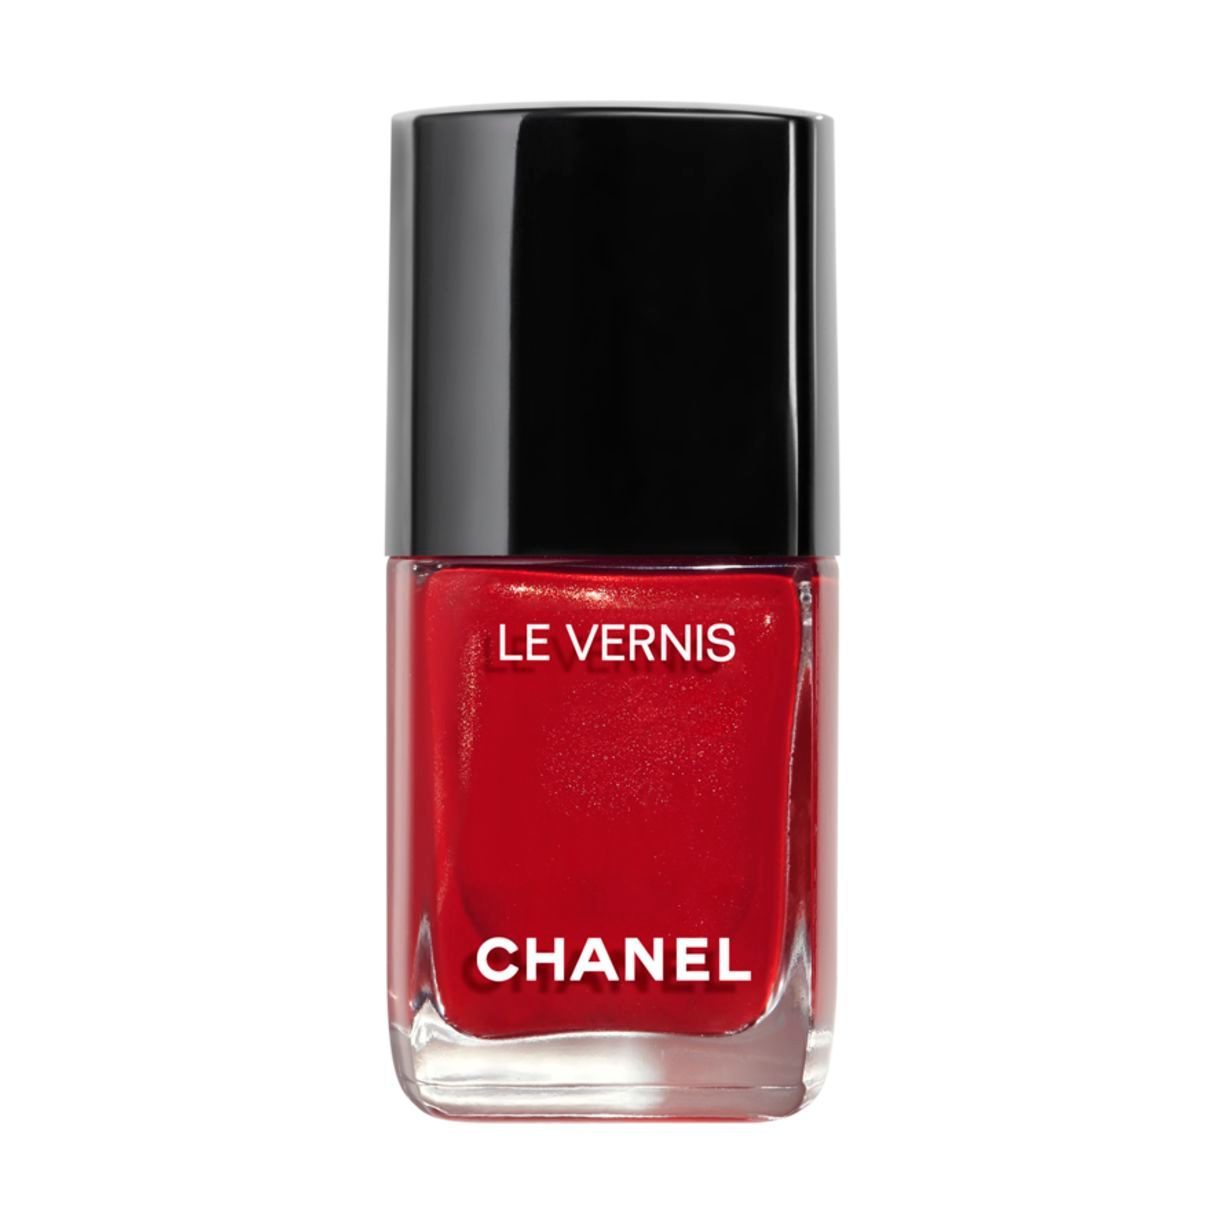 chanel nail polish 491 nail ftempo. Black Bedroom Furniture Sets. Home Design Ideas